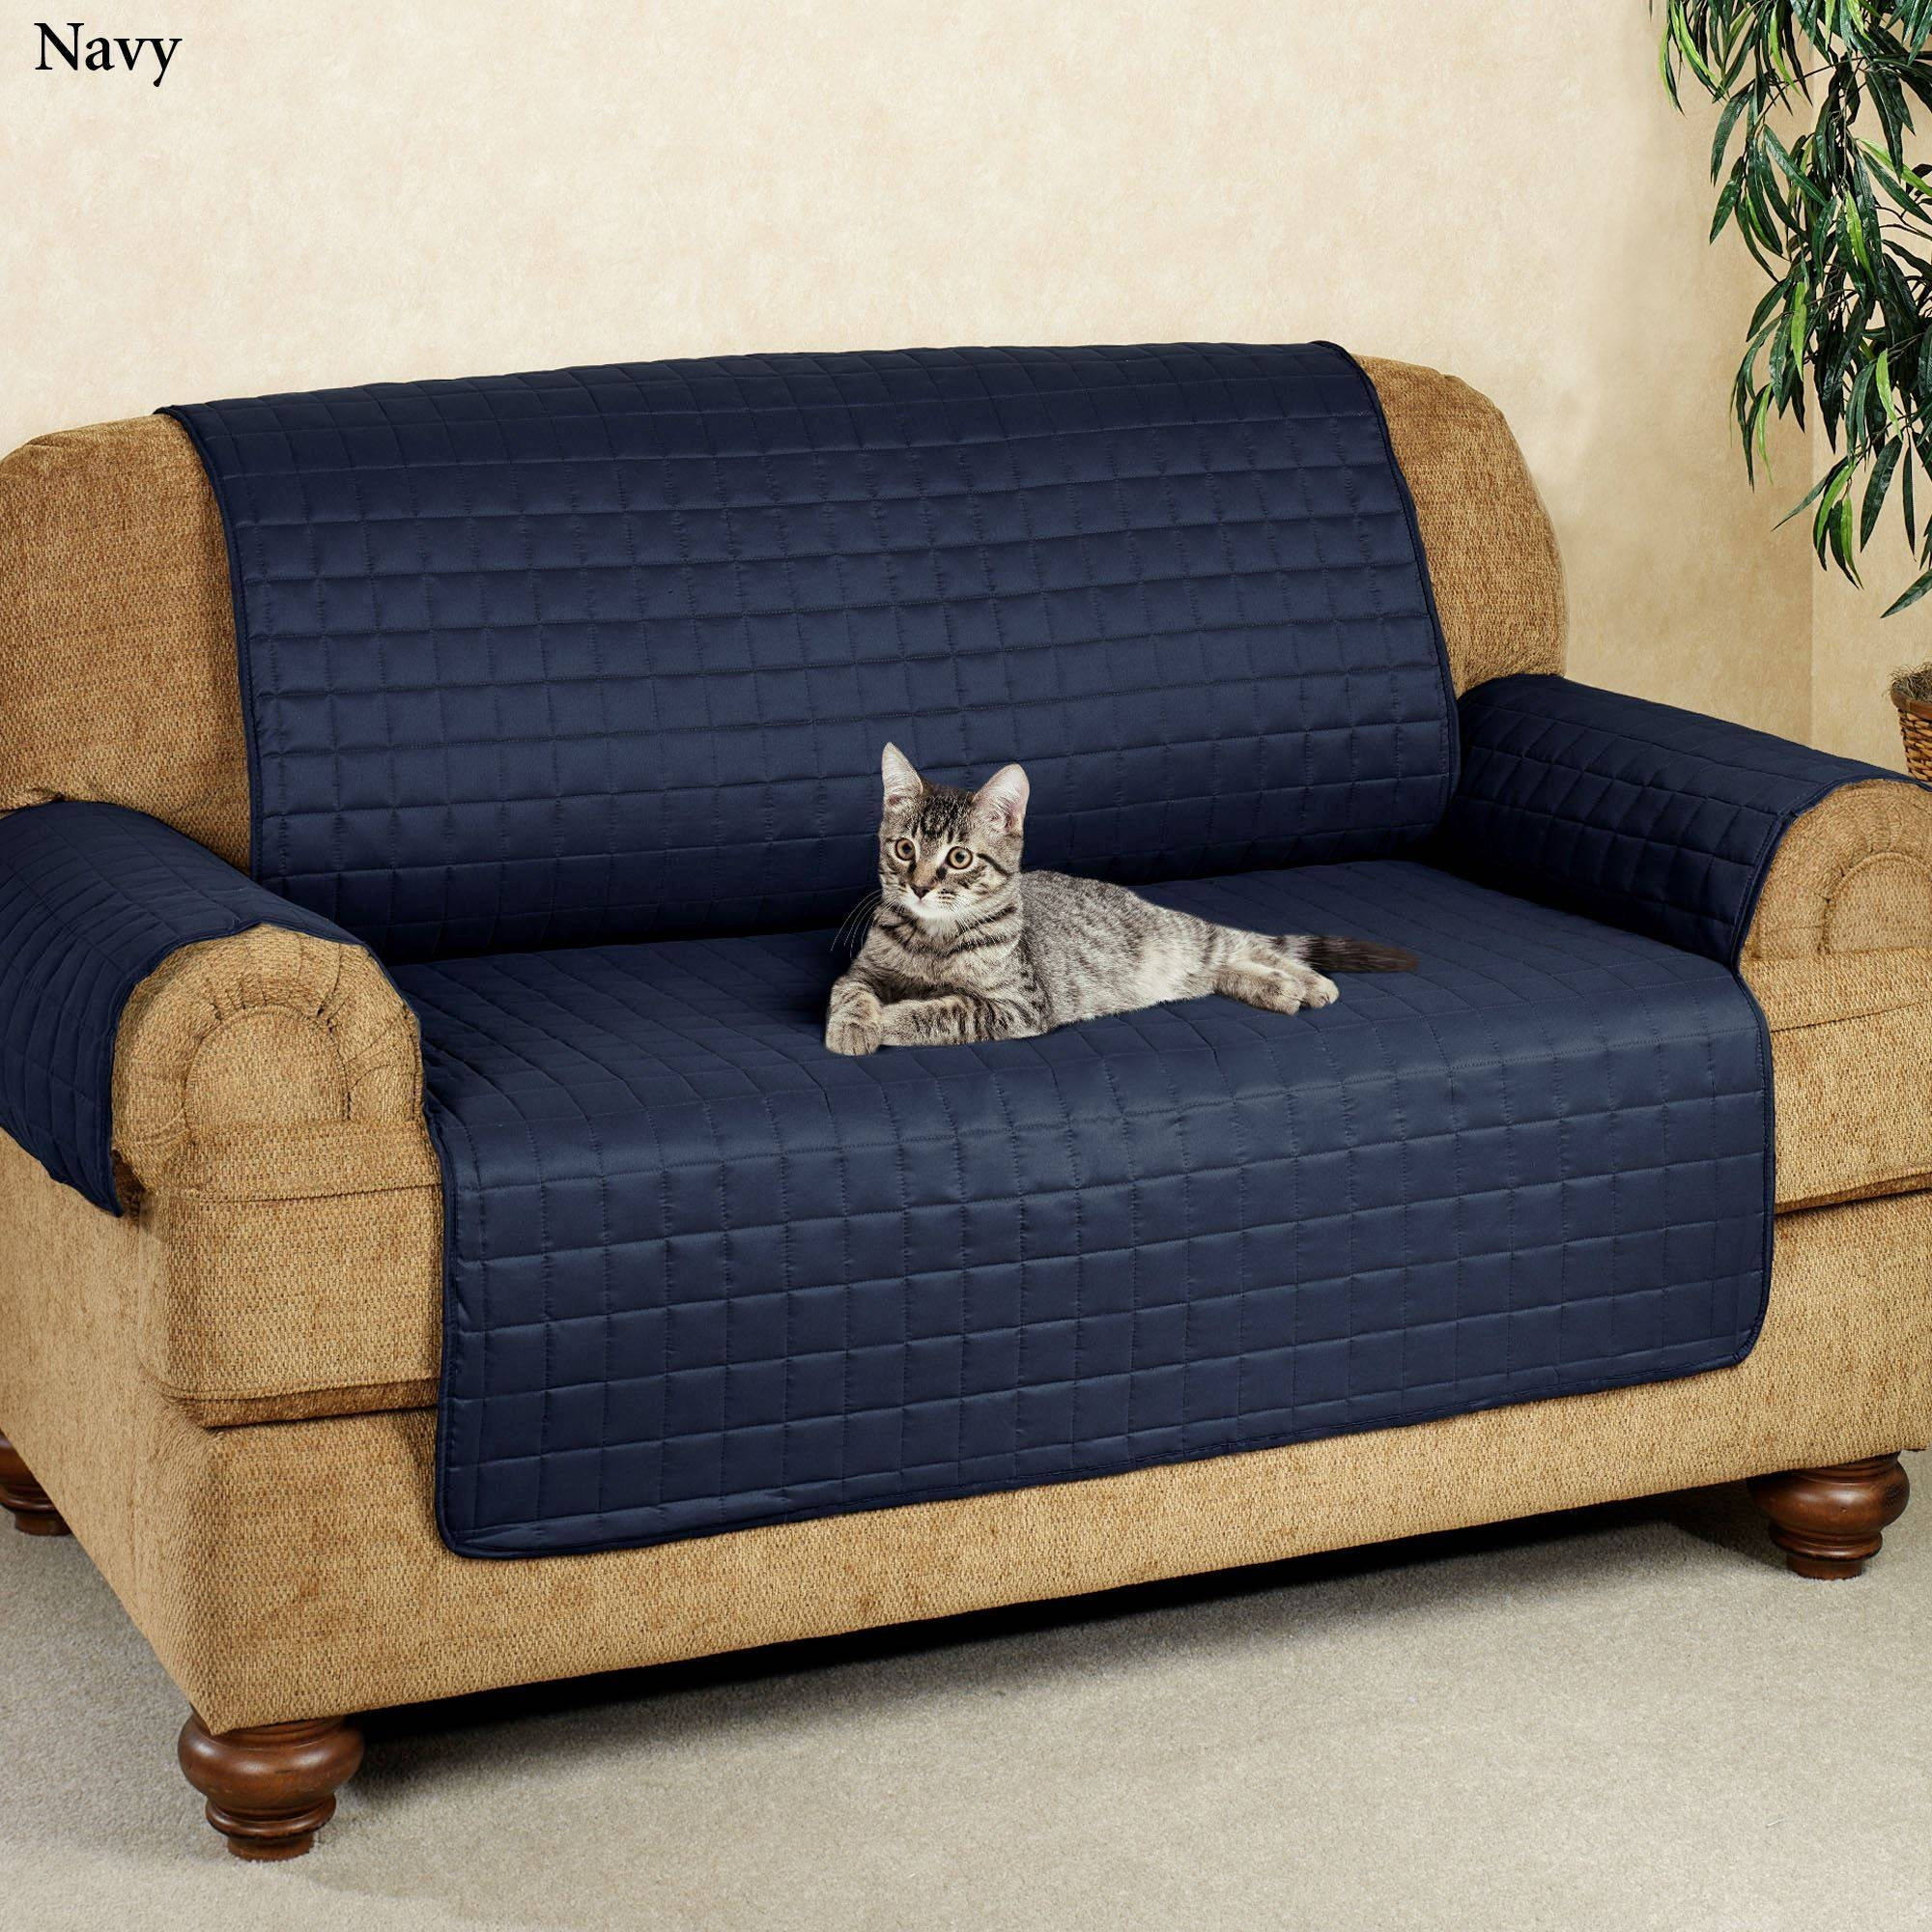 Microfiber Pet Furniture Covers With Tuck In Flaps pertaining to Navy Blue Slipcovers (Image 13 of 15)